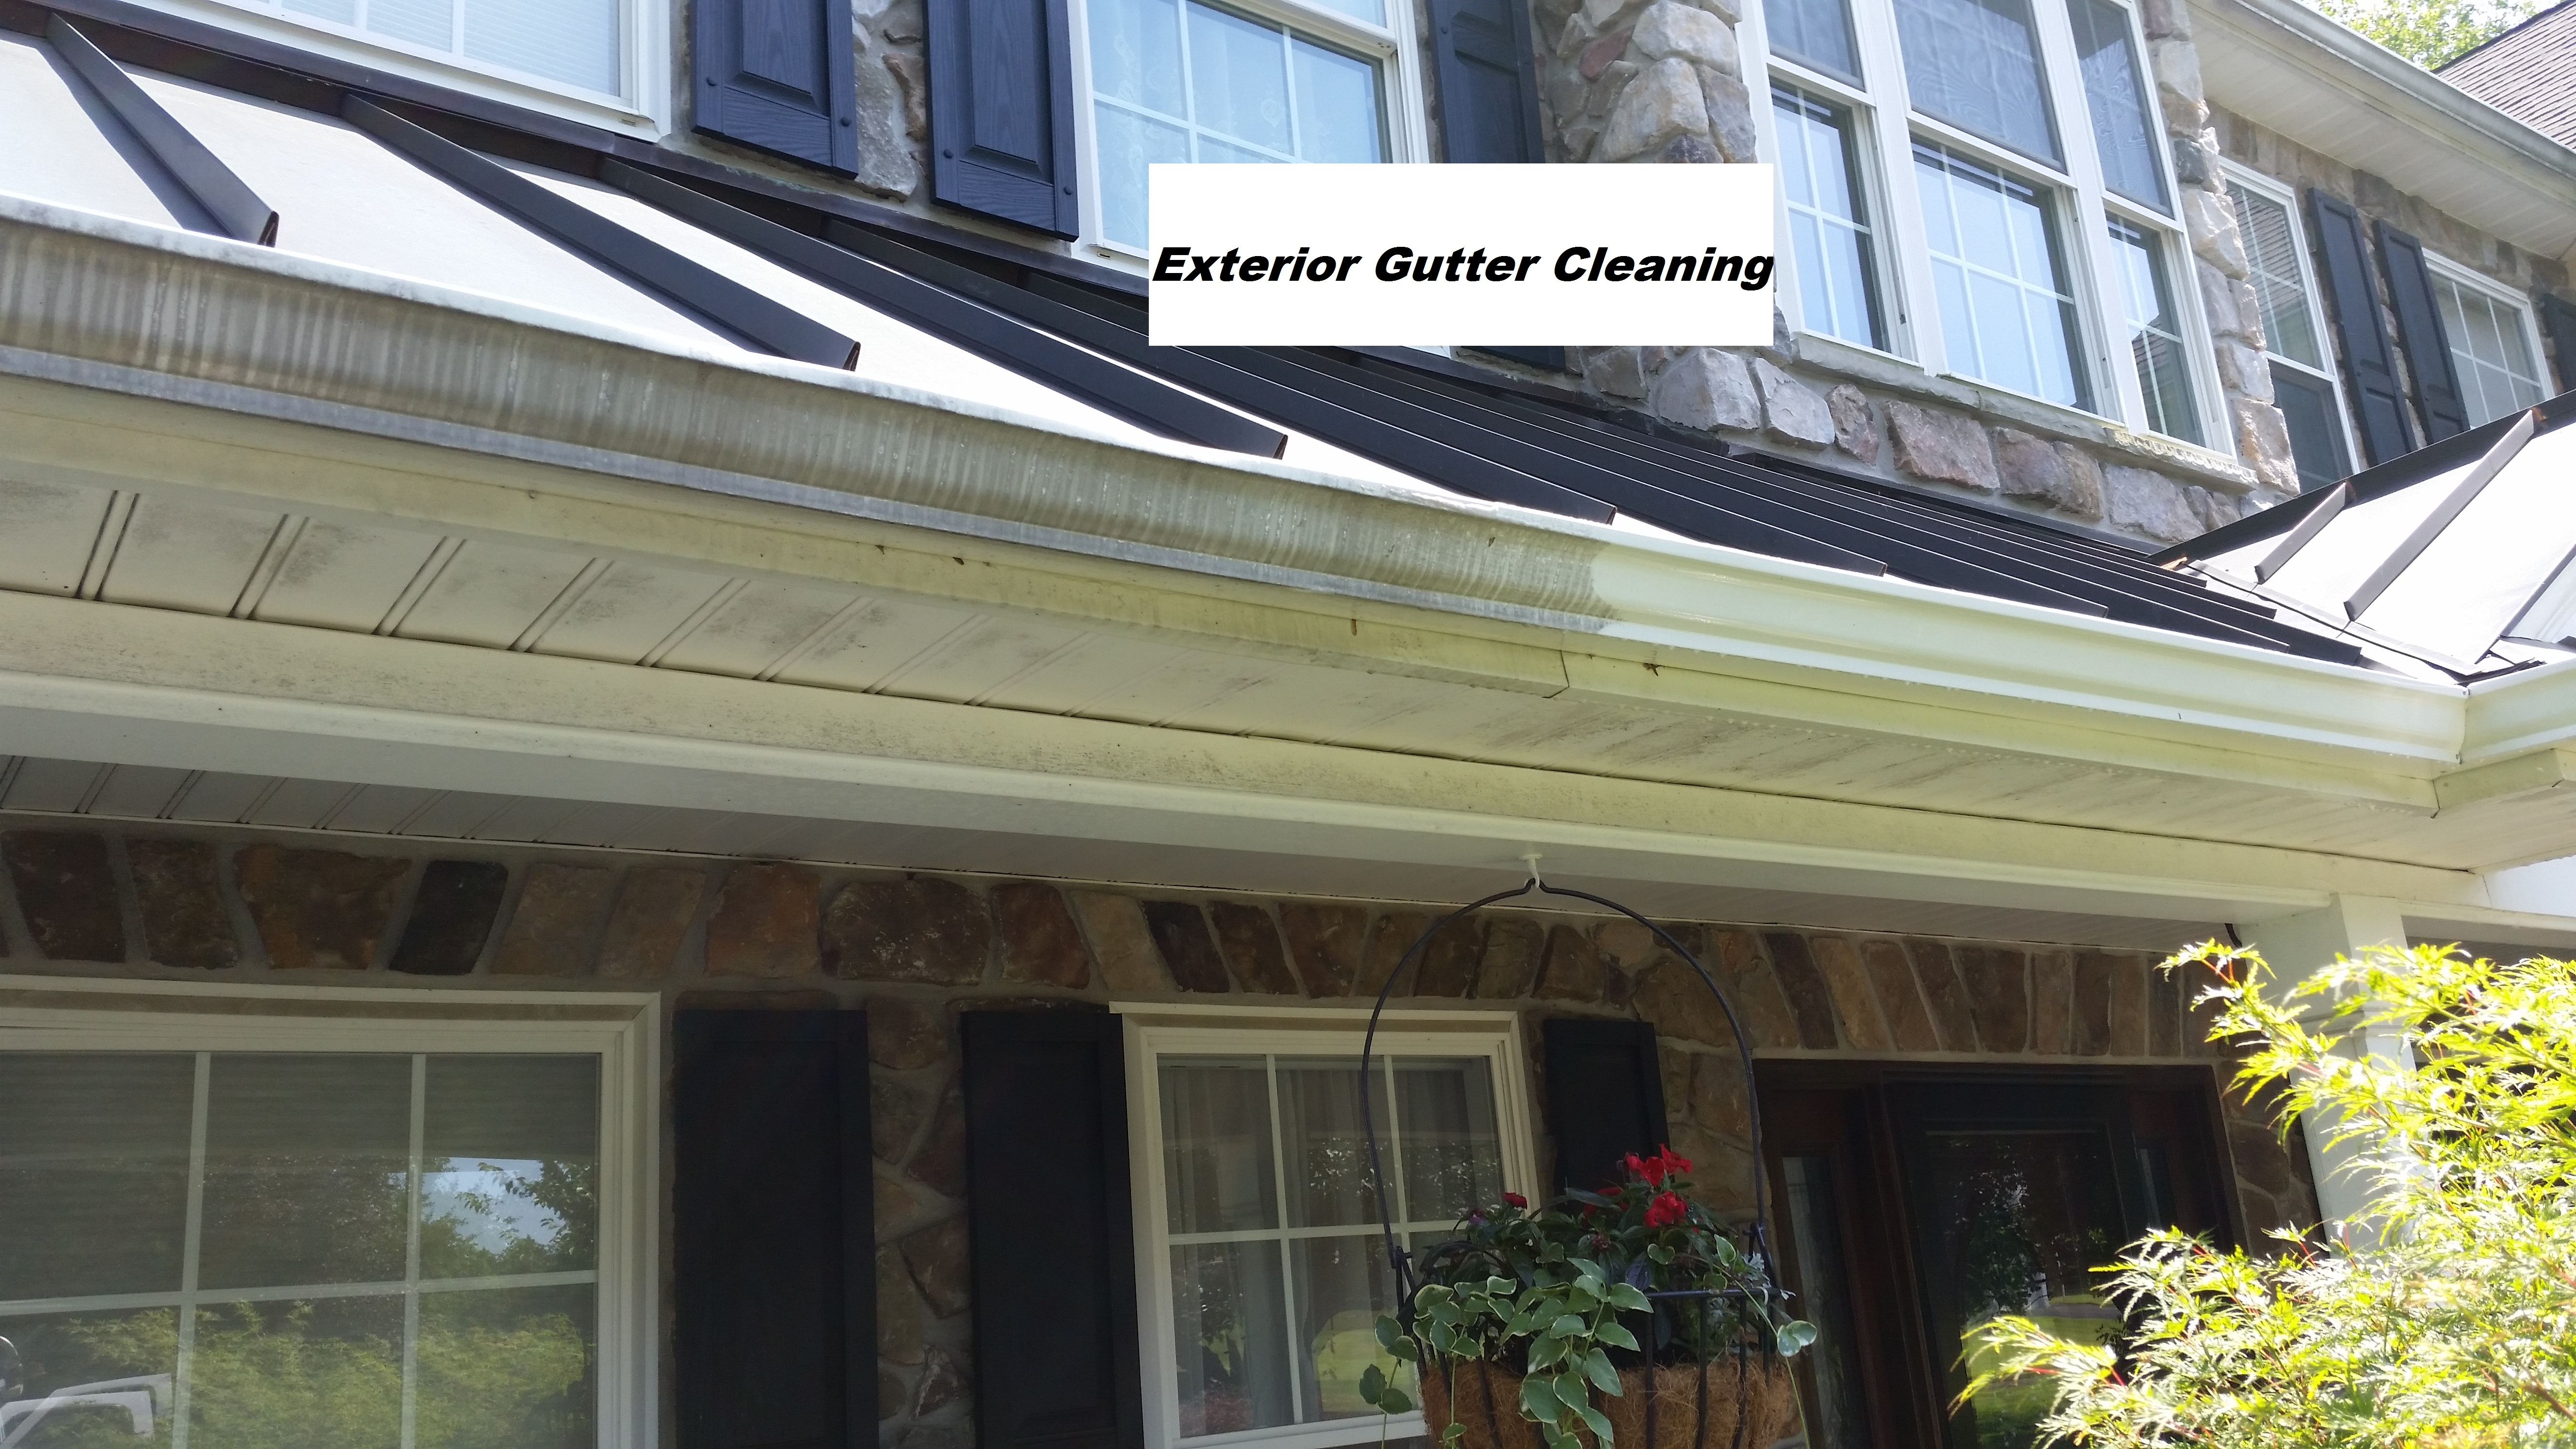 Gutter Cleaning Repair Installation Bucks County Home